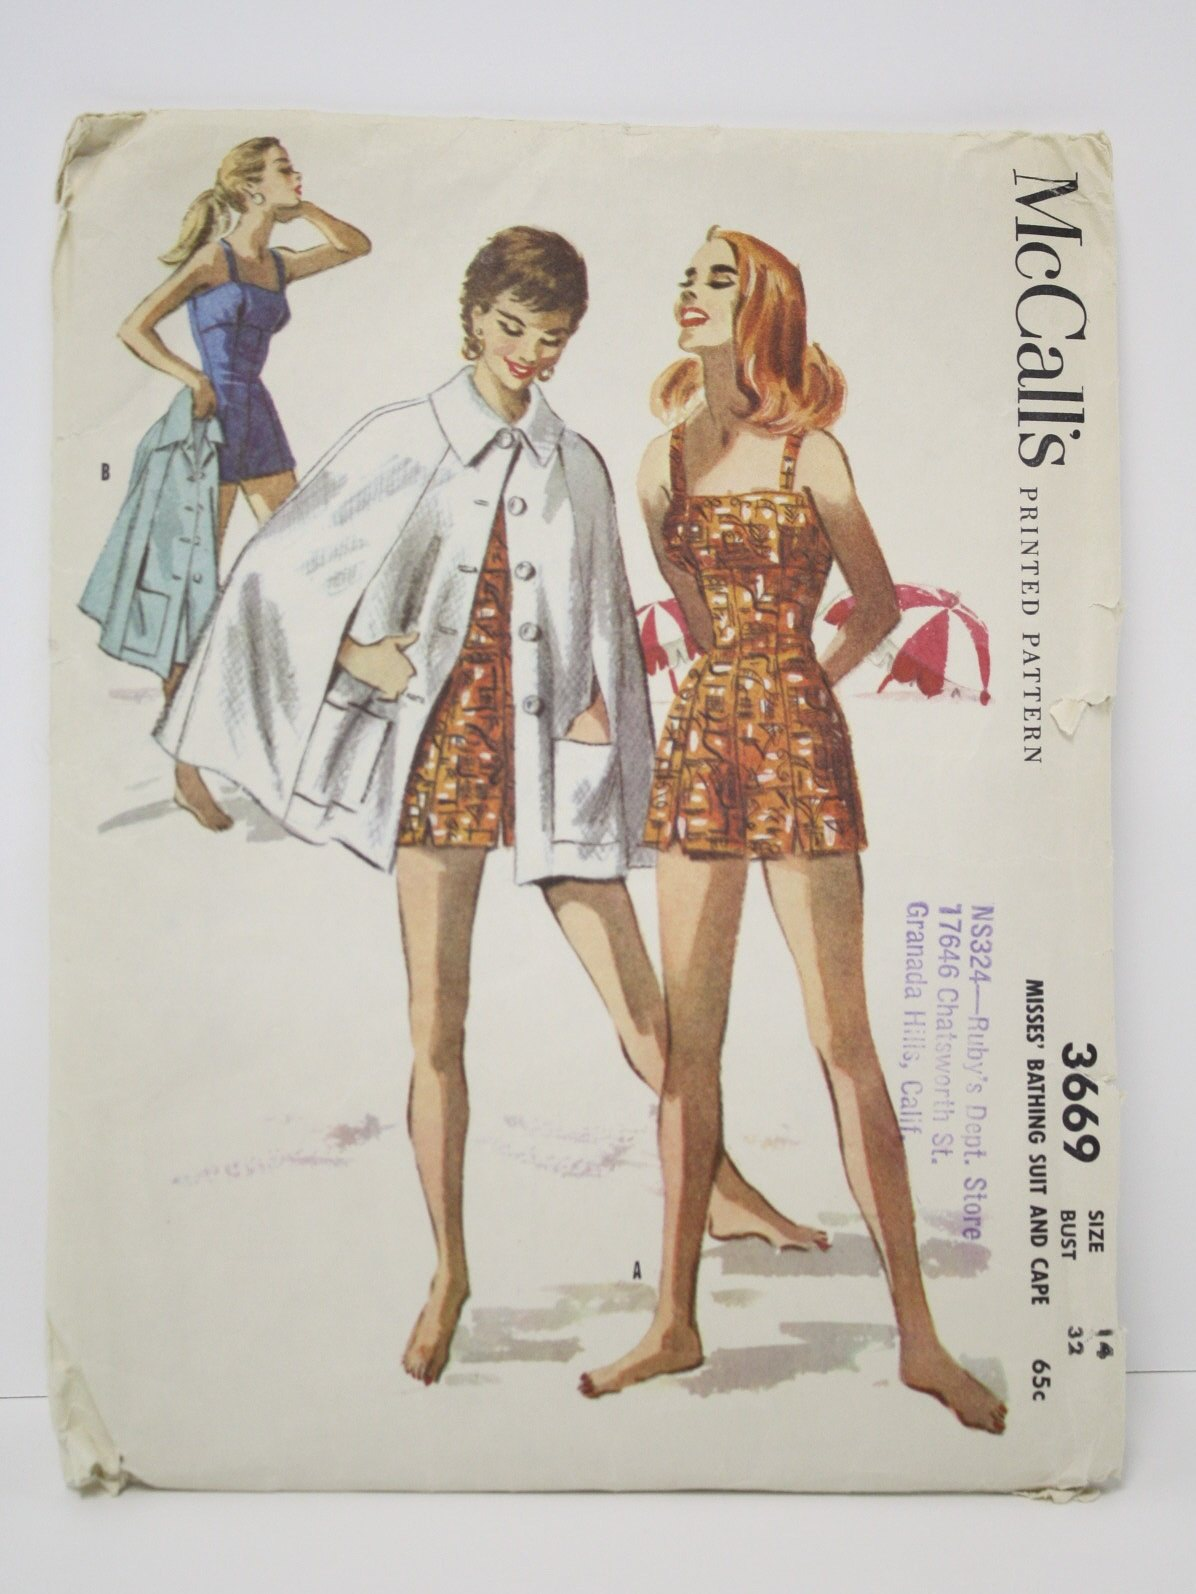 3669 Sewing Pattern: 1956 -McCalls Pattern No. 3669- Womens sewing pattern  for fitted one-piece bathing suit with shorts-style legs, button-front  beach cape ...